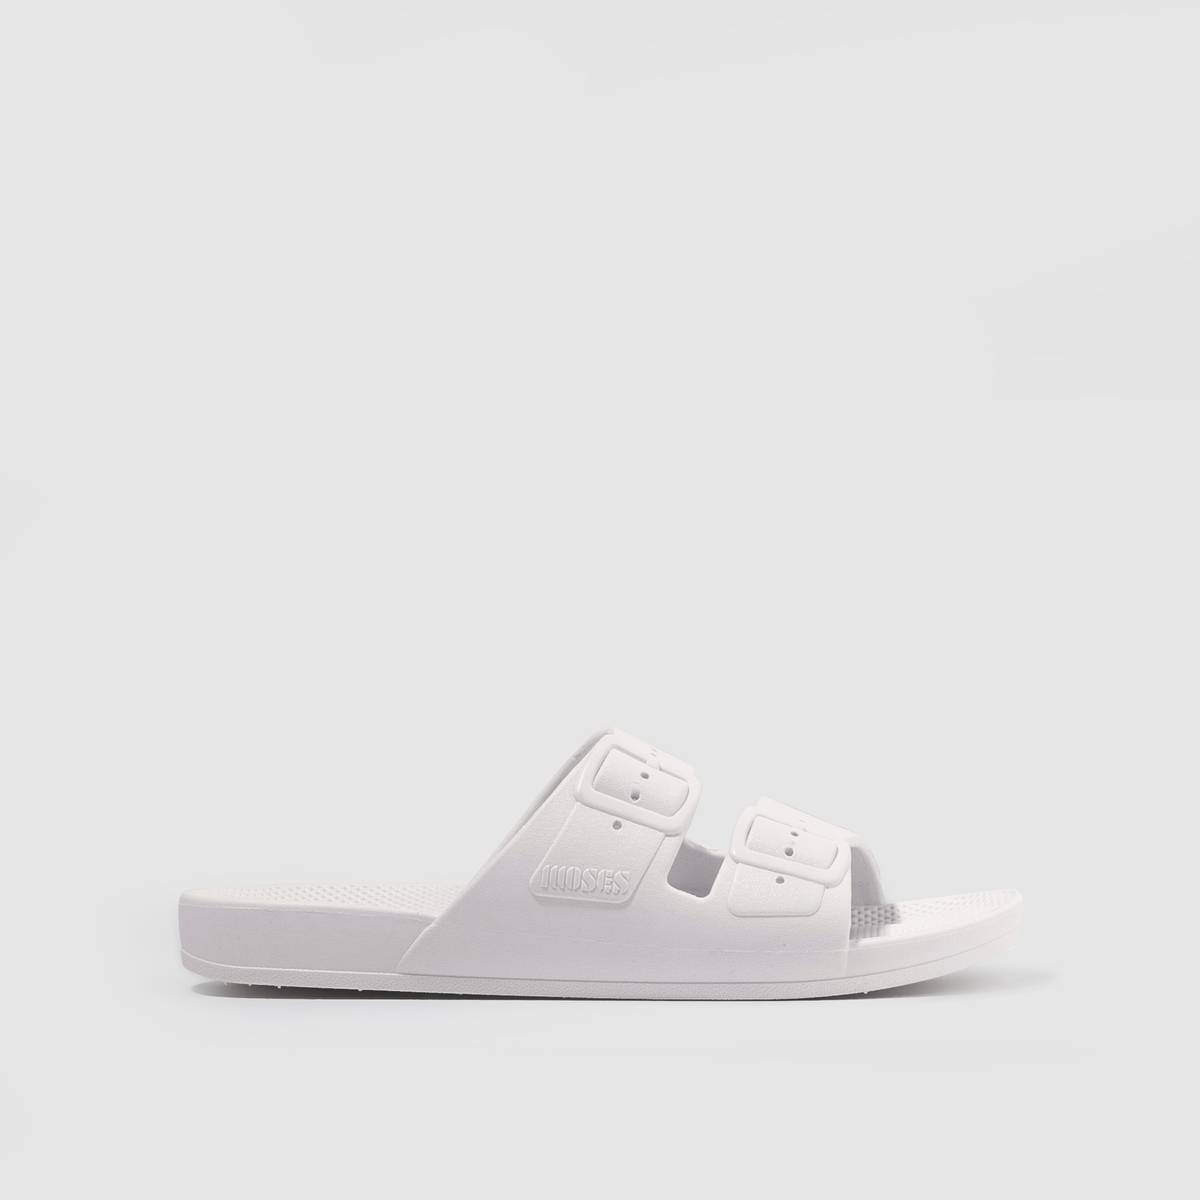 MOSES Mules FREEDOM blanco